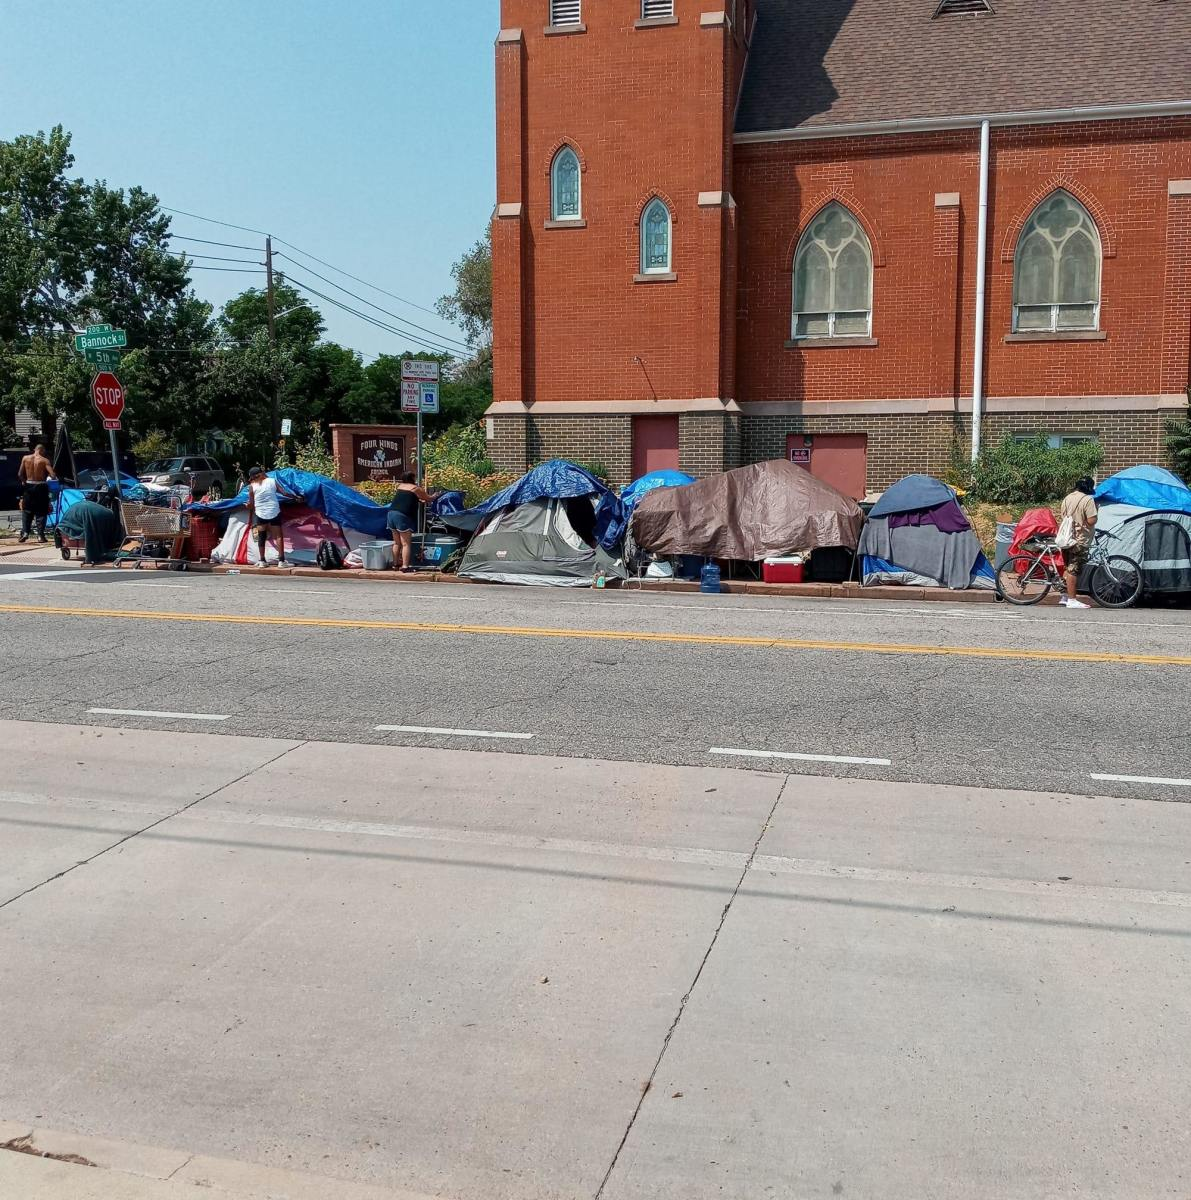 """Pictured: The City of Denver plans to destroy the Denver Indigenous Refugee Camp"""" outside the Four Winds Indian Council building and displace its unhoused Native residents in the early hours of August 31, 2021."""